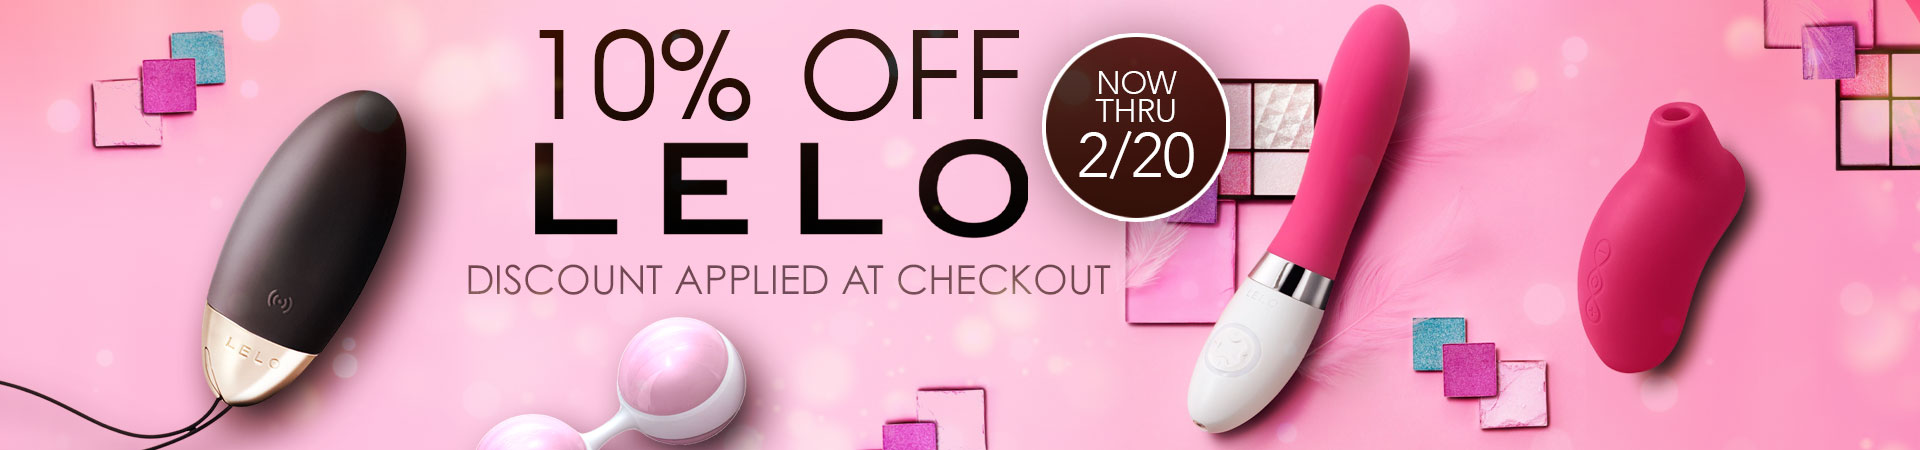 Save 10% On All Lelo Products - Discount Applied At Checkout - Now Thru 2/20